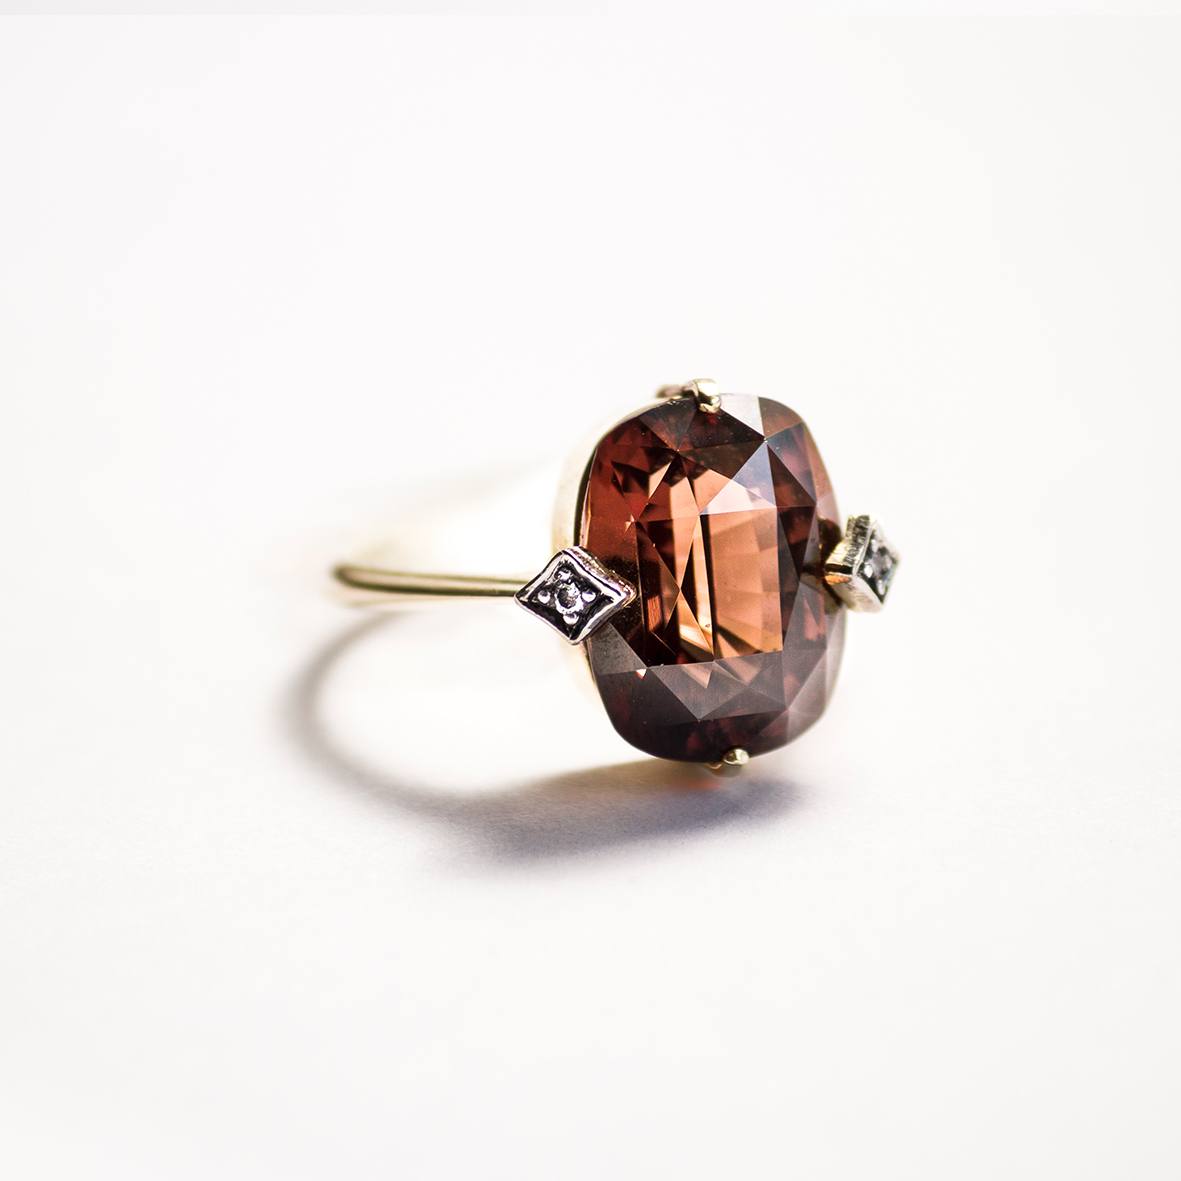 3. OONA_gems of ceylon_ficha1_red-brown zircon ring